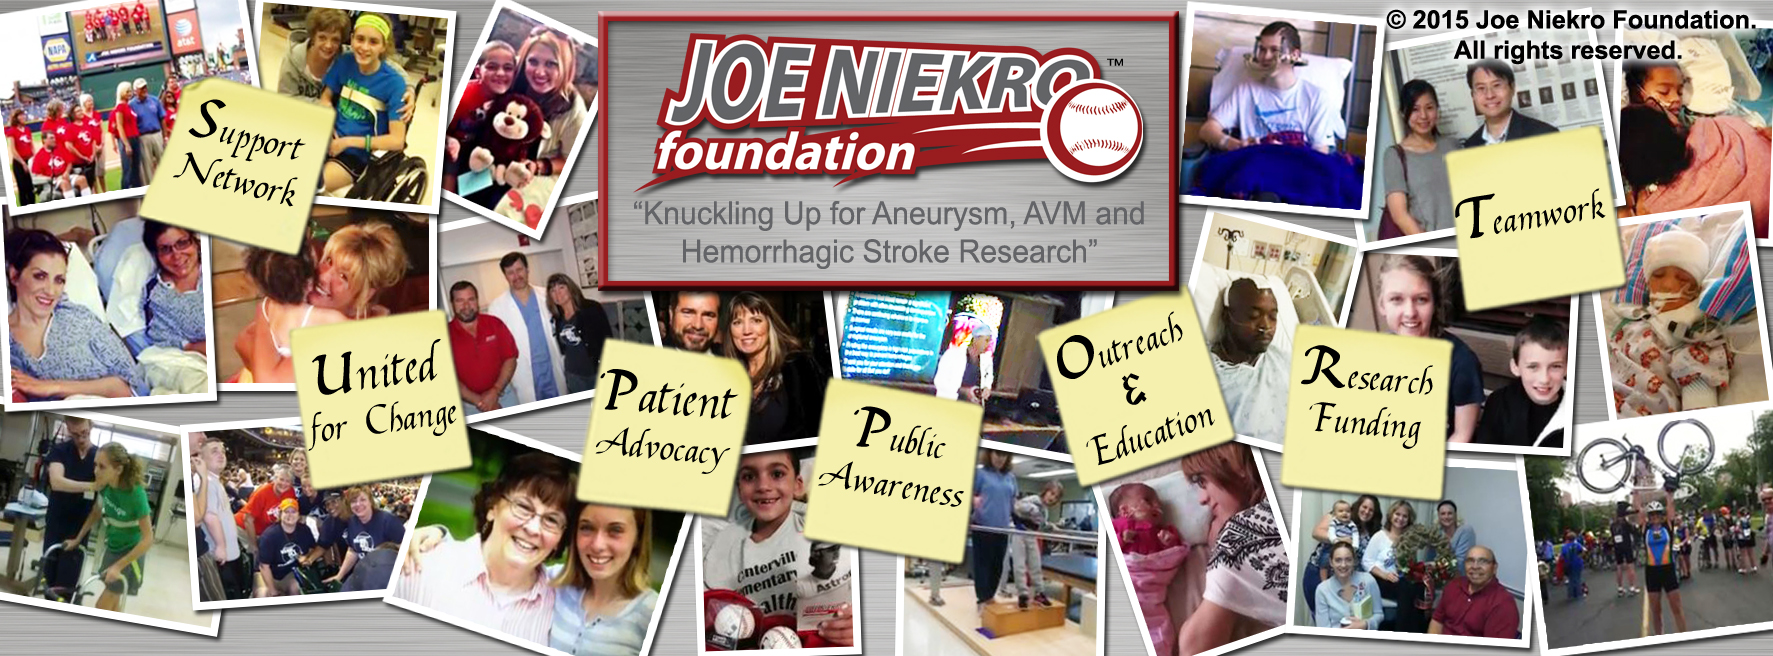 https://www.joeniekrofoundation.com/home-billboards/2631/attachment/survivor-banner-tm-2/